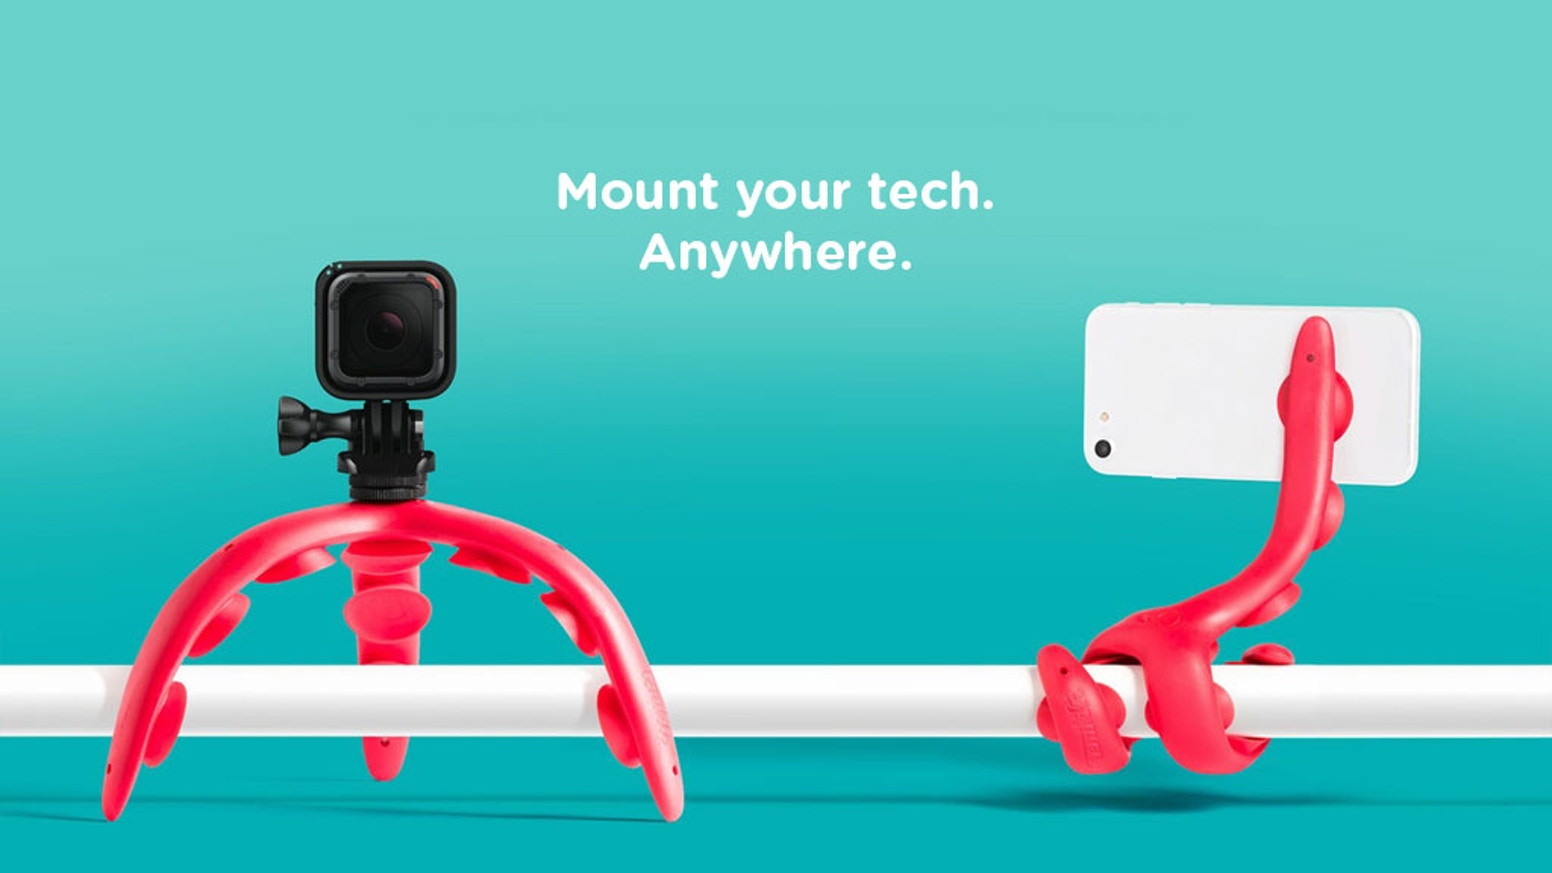 A personal cameraman, a car mount, a stand, and much more. Discover what's possible when tentacles meet tech.